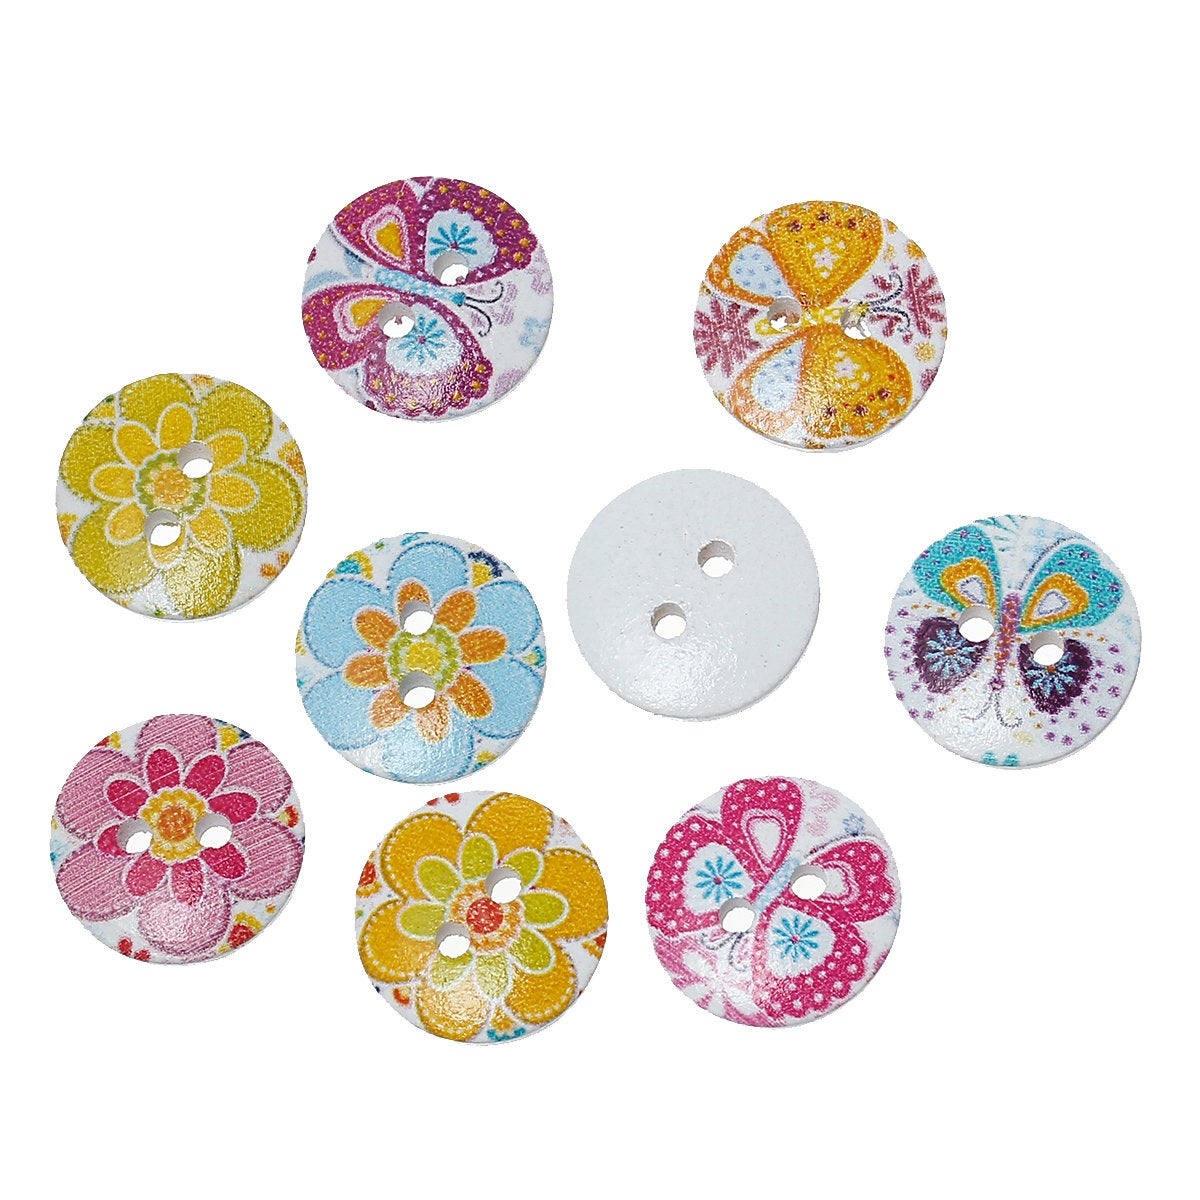 Mixed Color Flowers and Butterflies Wooden Buttons - 15mm (5/8 inch) - Multi Color - 2 Hole - Mixed Wood Button (66879)